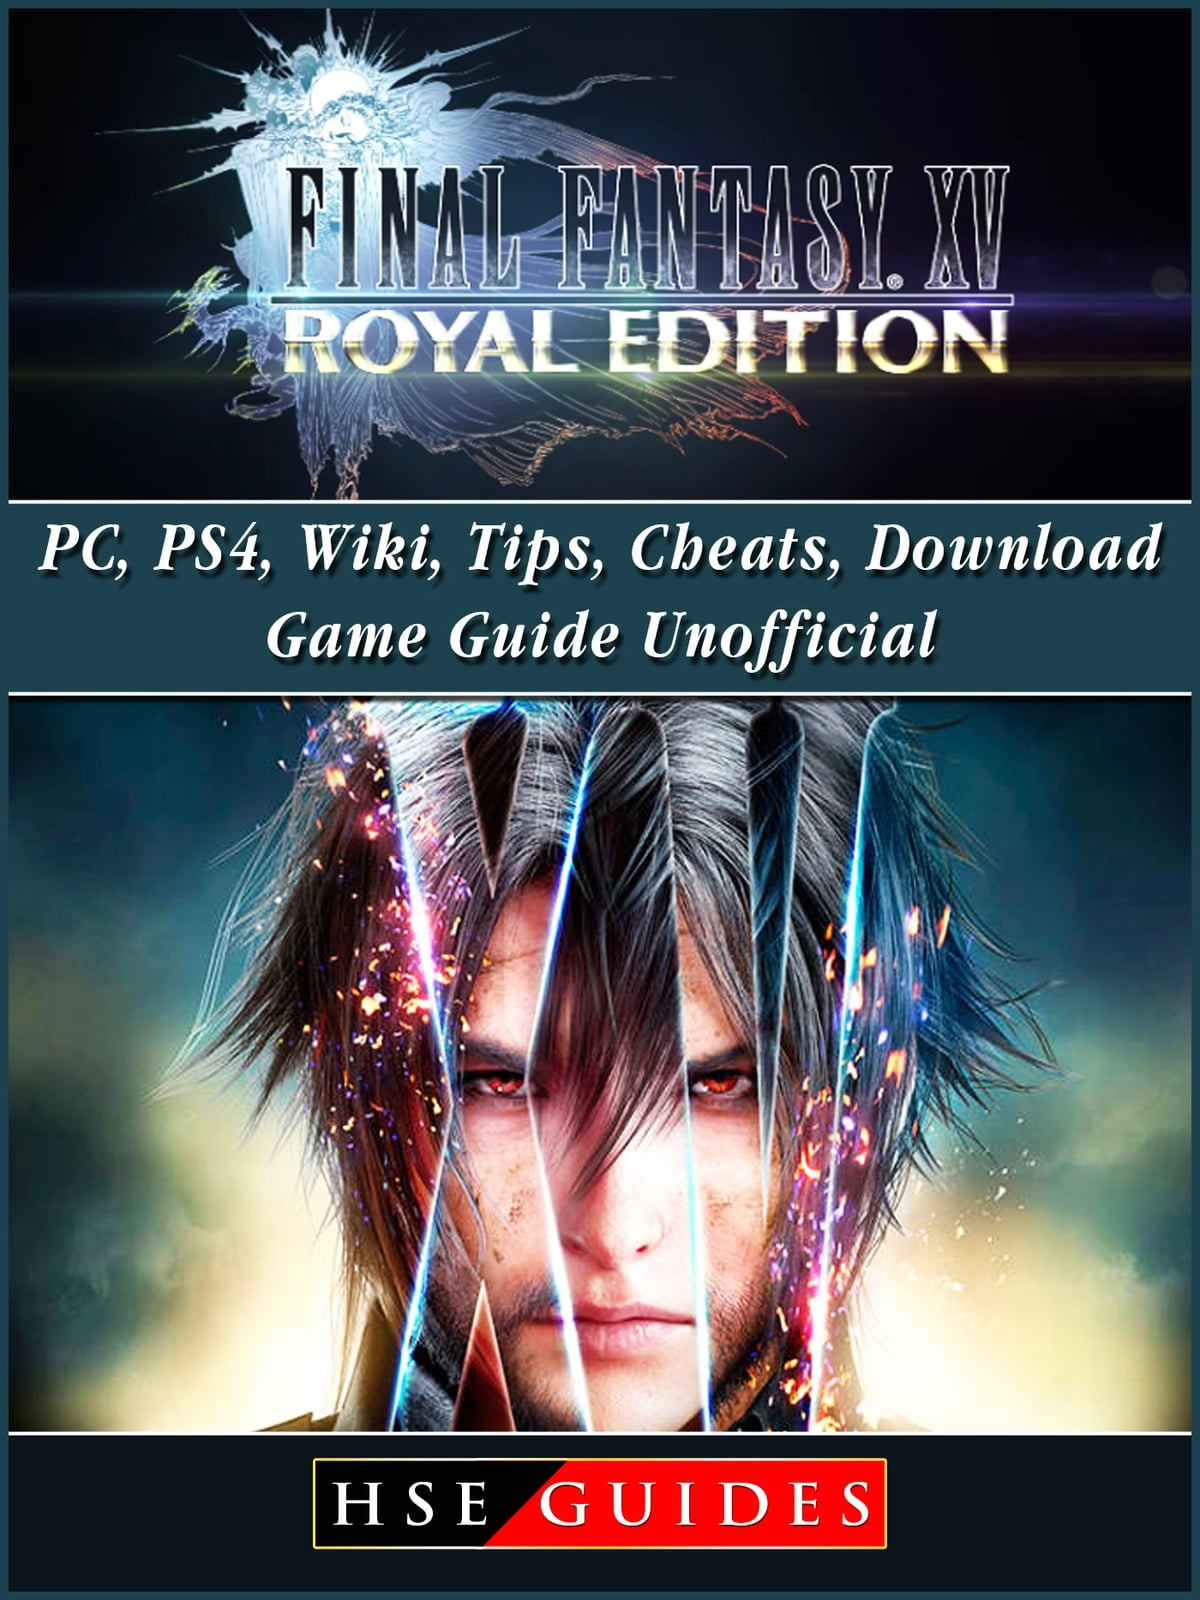 Final Fantasy Xv Royal Edition Pc Ps4 Wiki Tips Cheats Download Game Guide Unofficial Ebooks By Hse Guides Rakuten Kobo - farmulator roblox wiki codes